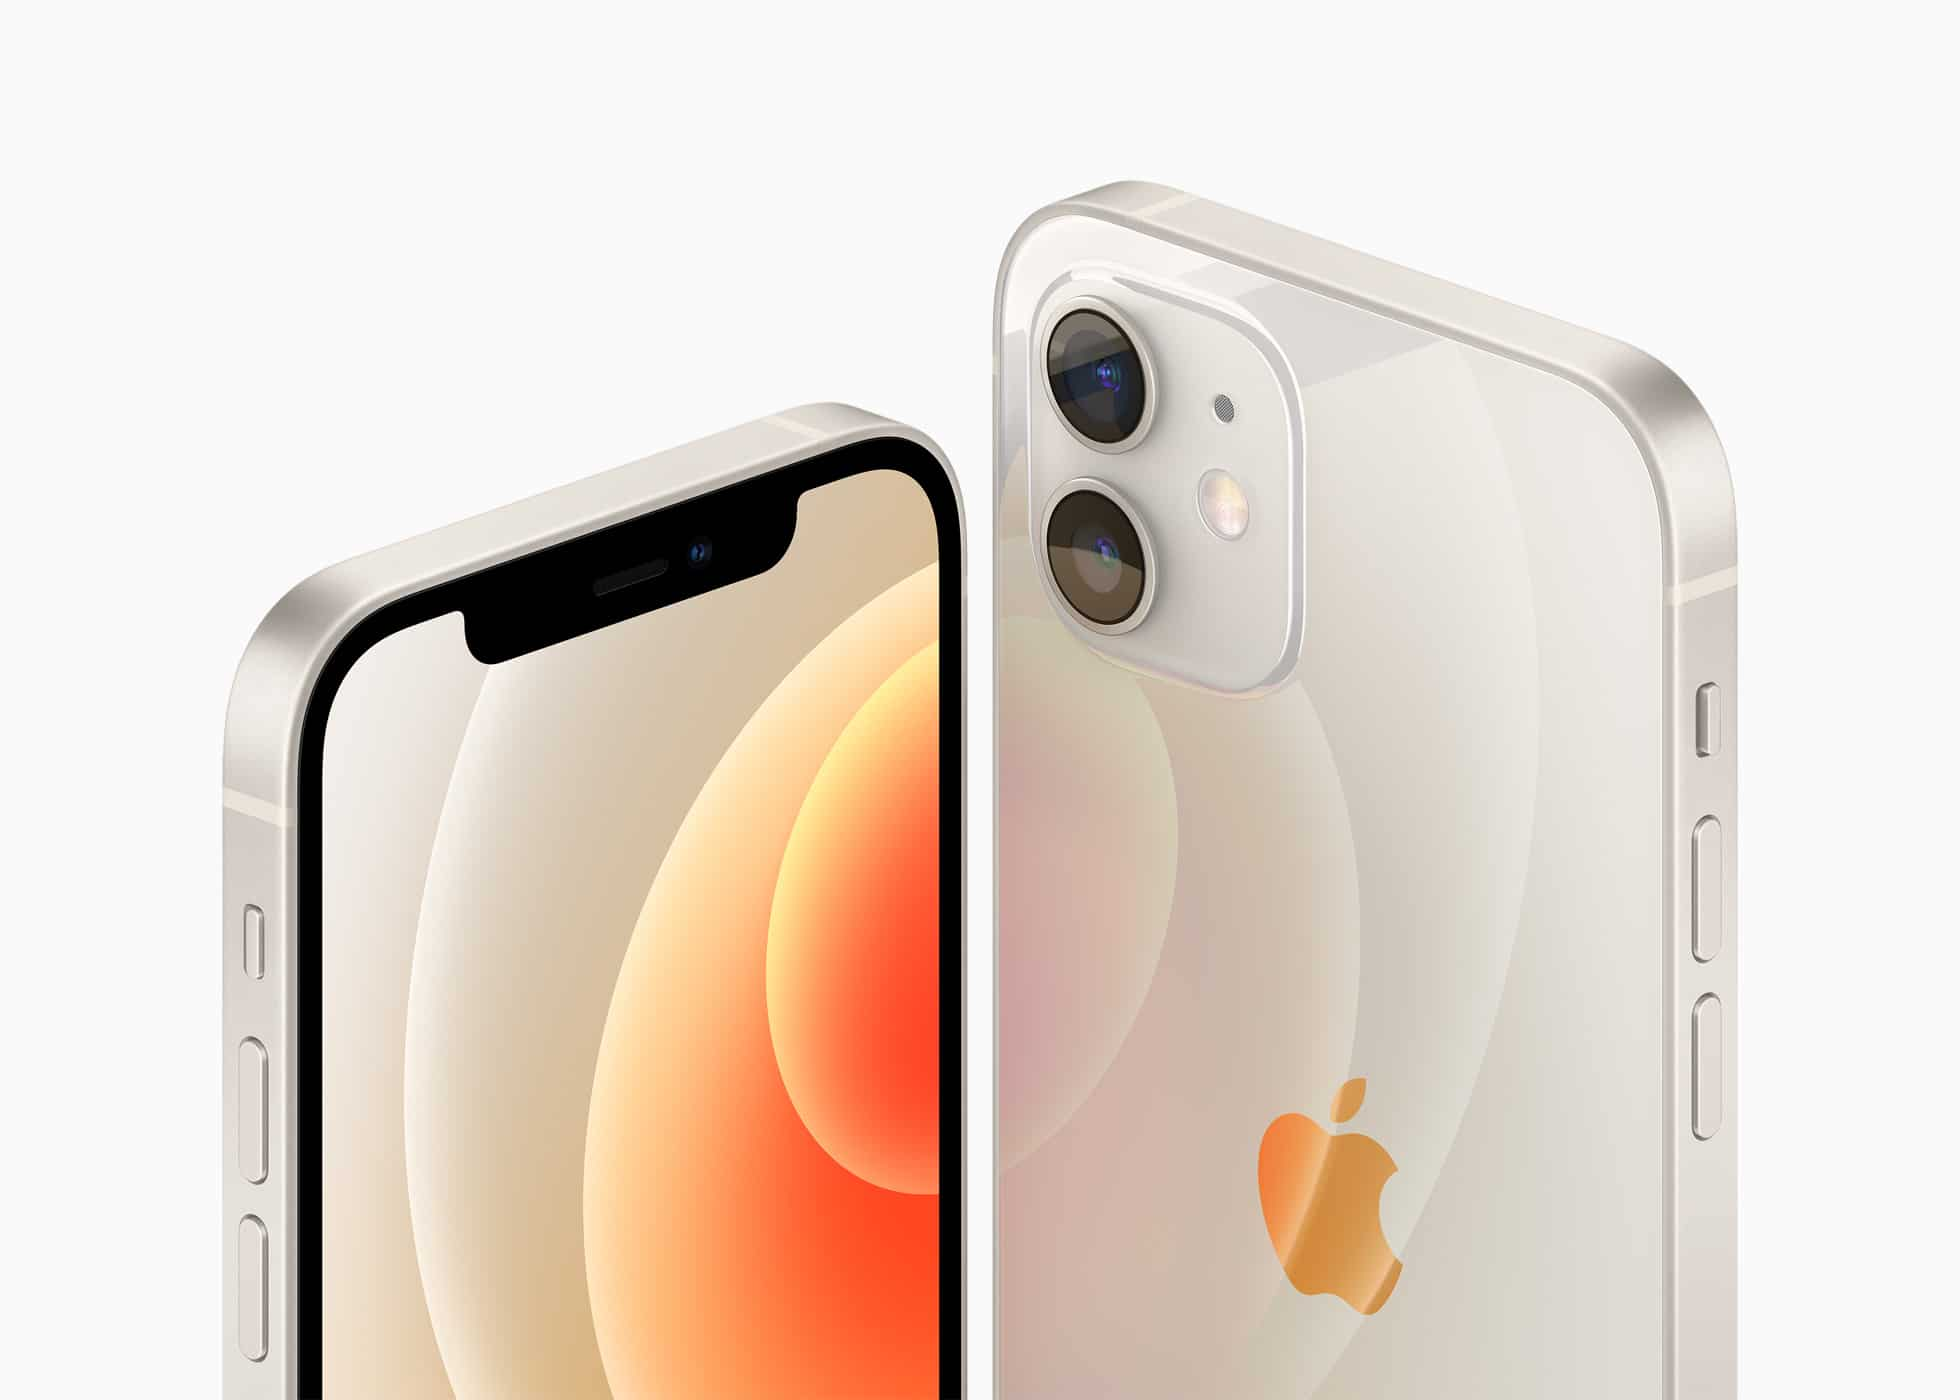 Apple iPhone 12, iPhone 12 Mini, iPhone 12 Pro, iPhone 12 Pro Max: Features